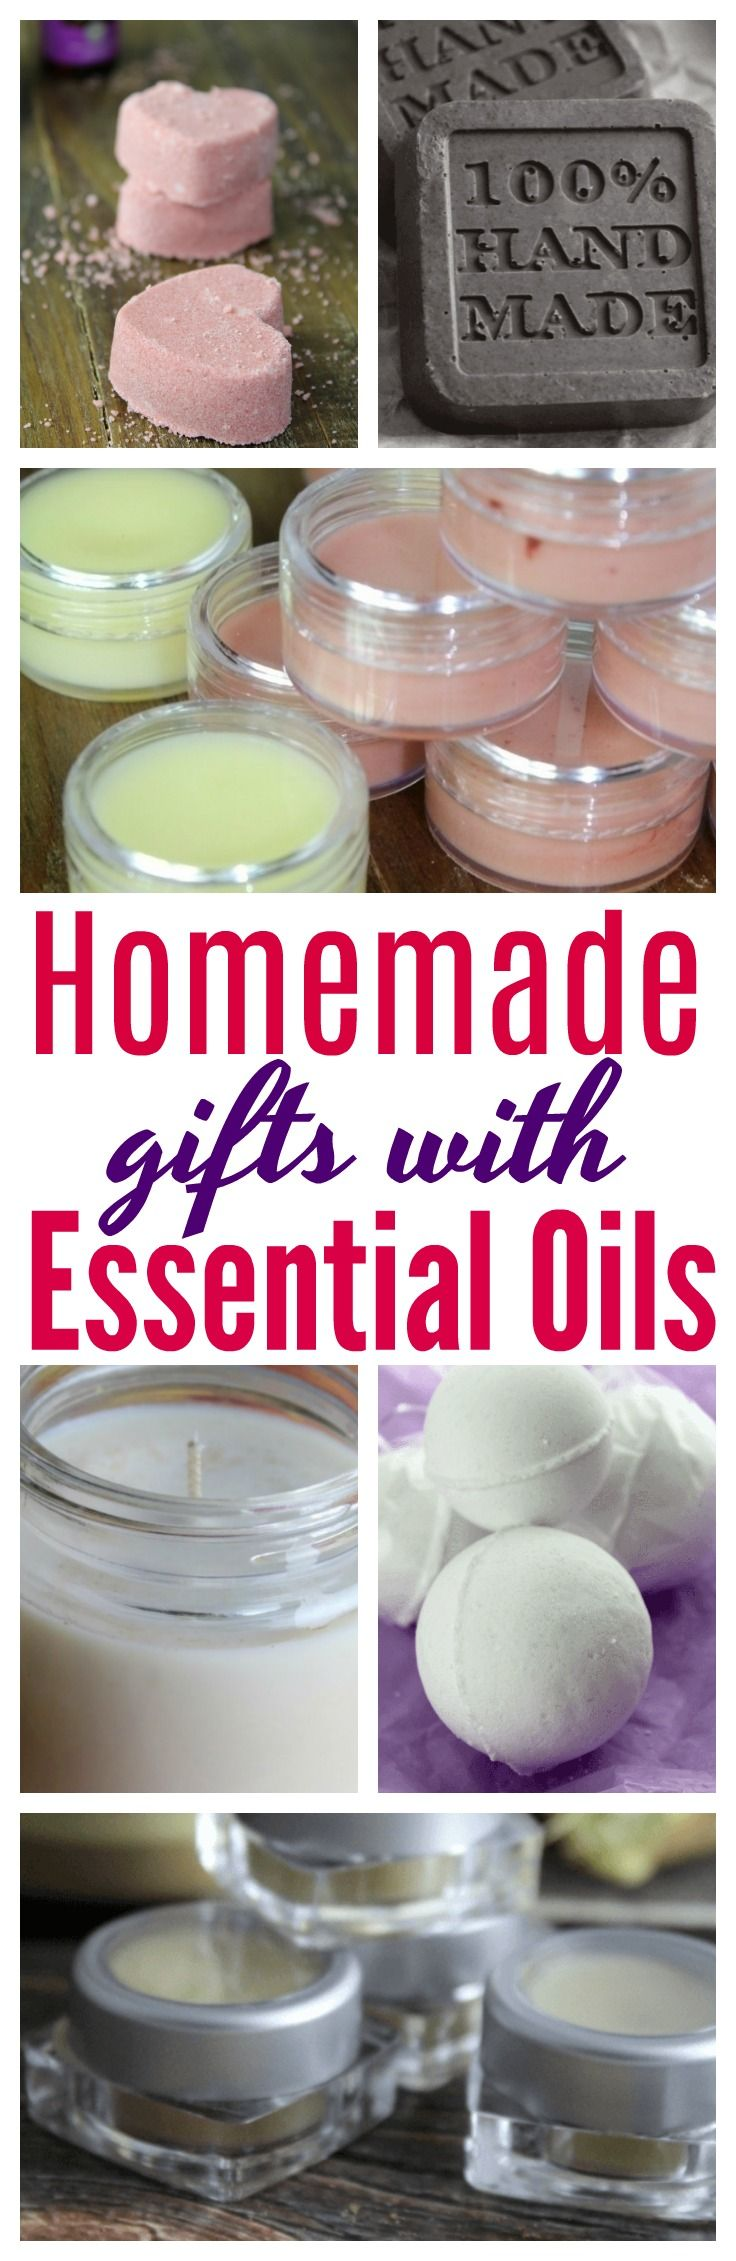 Gift giving to family and friends? Here are 10 homemade Items you can give that are made with essential oils! #DIY | #EssentialOils | #Gifts